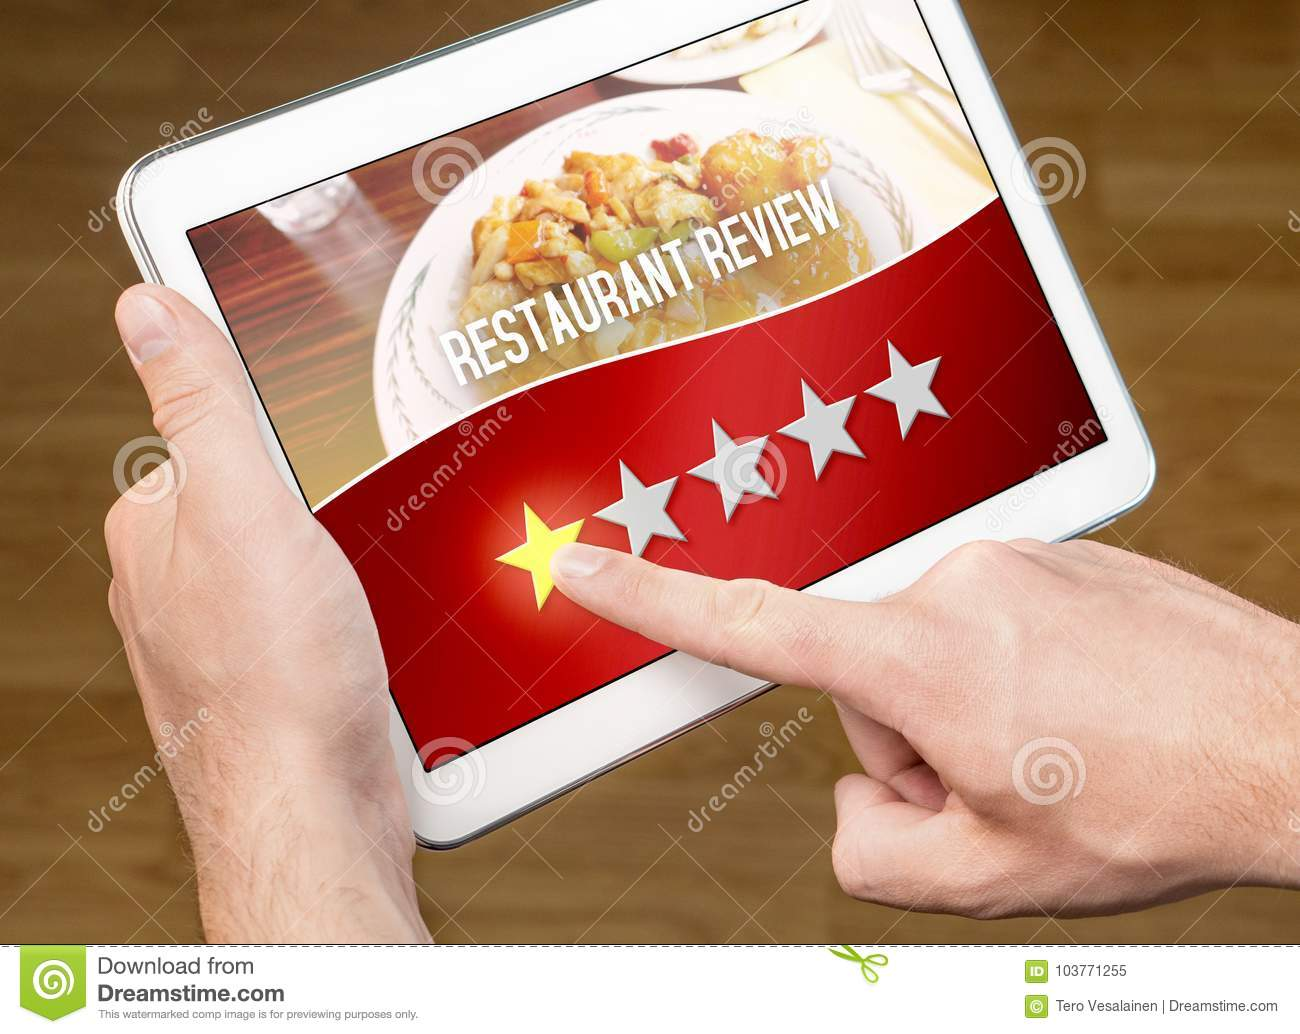 Bad restaurant review. Disappointed and dissatisfied customer